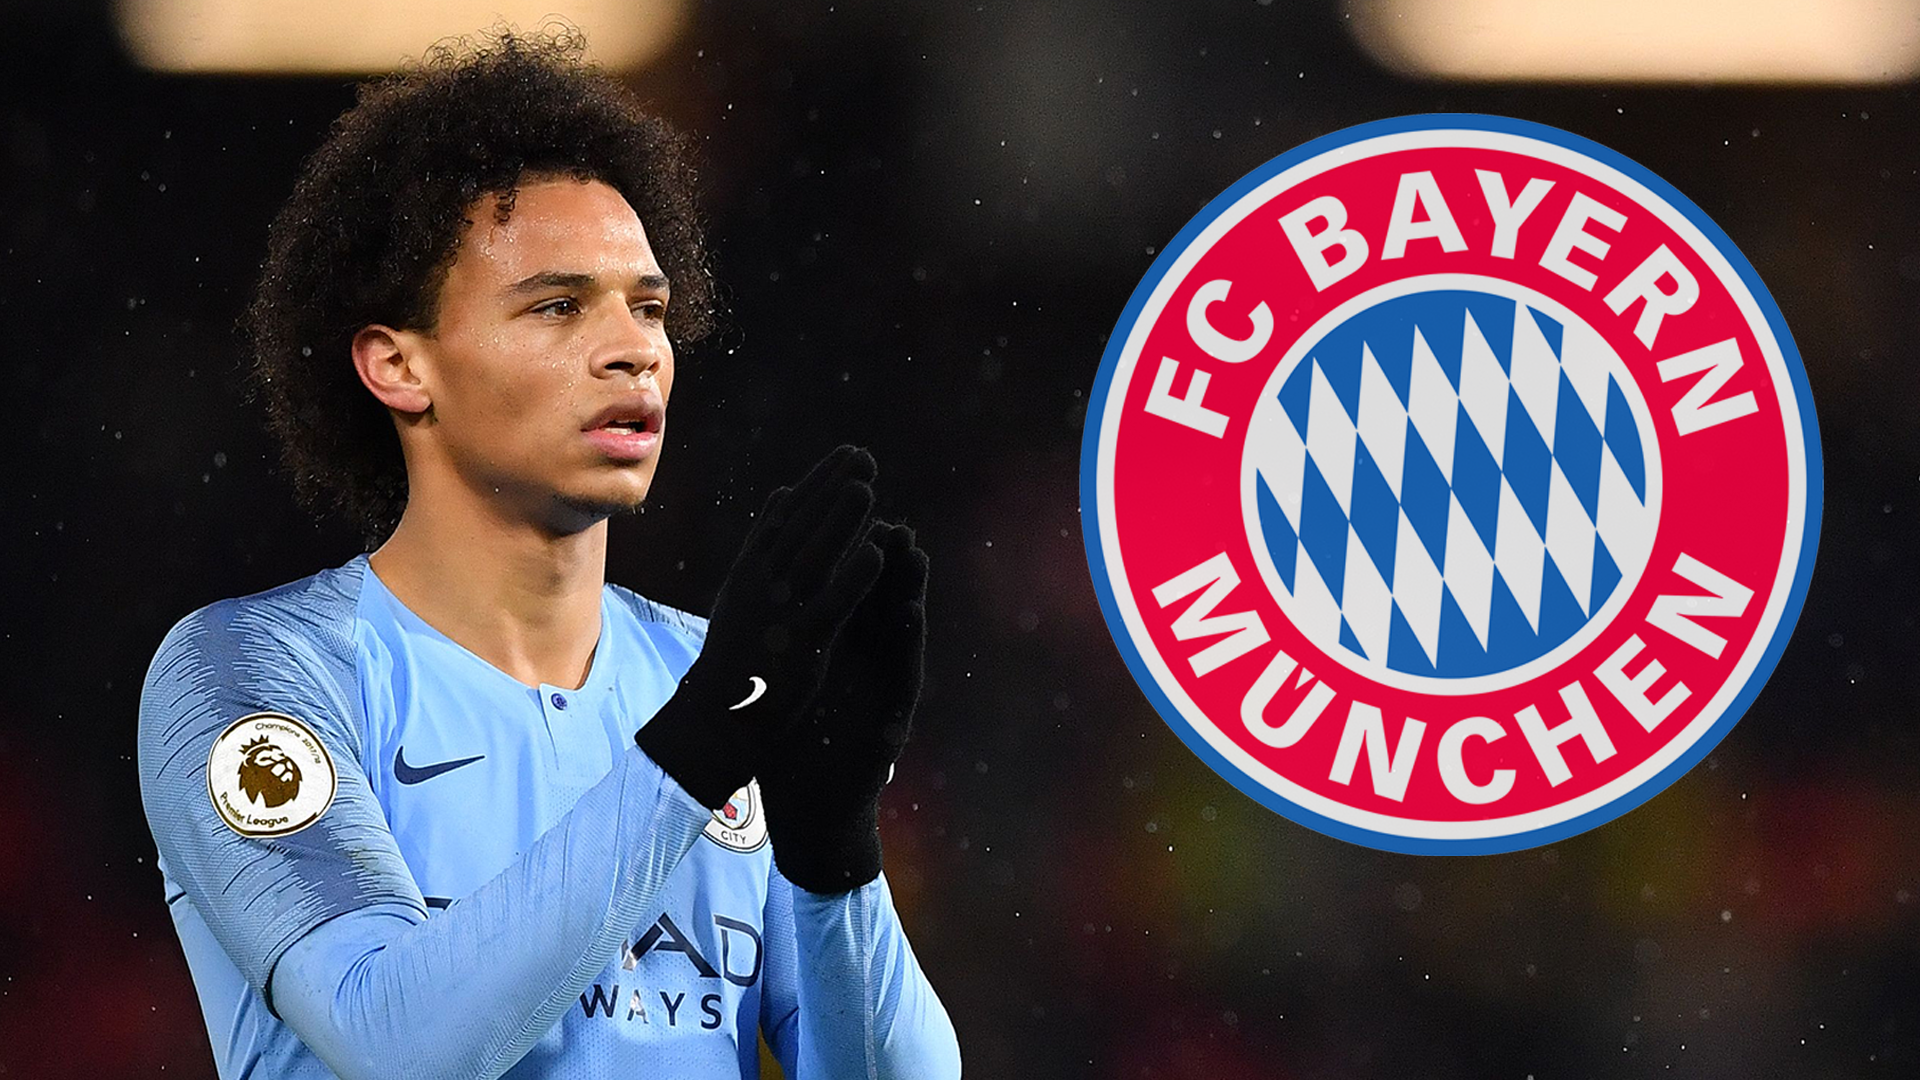 Bayern Munich chief Hoeness confirms move for Man City star Sane